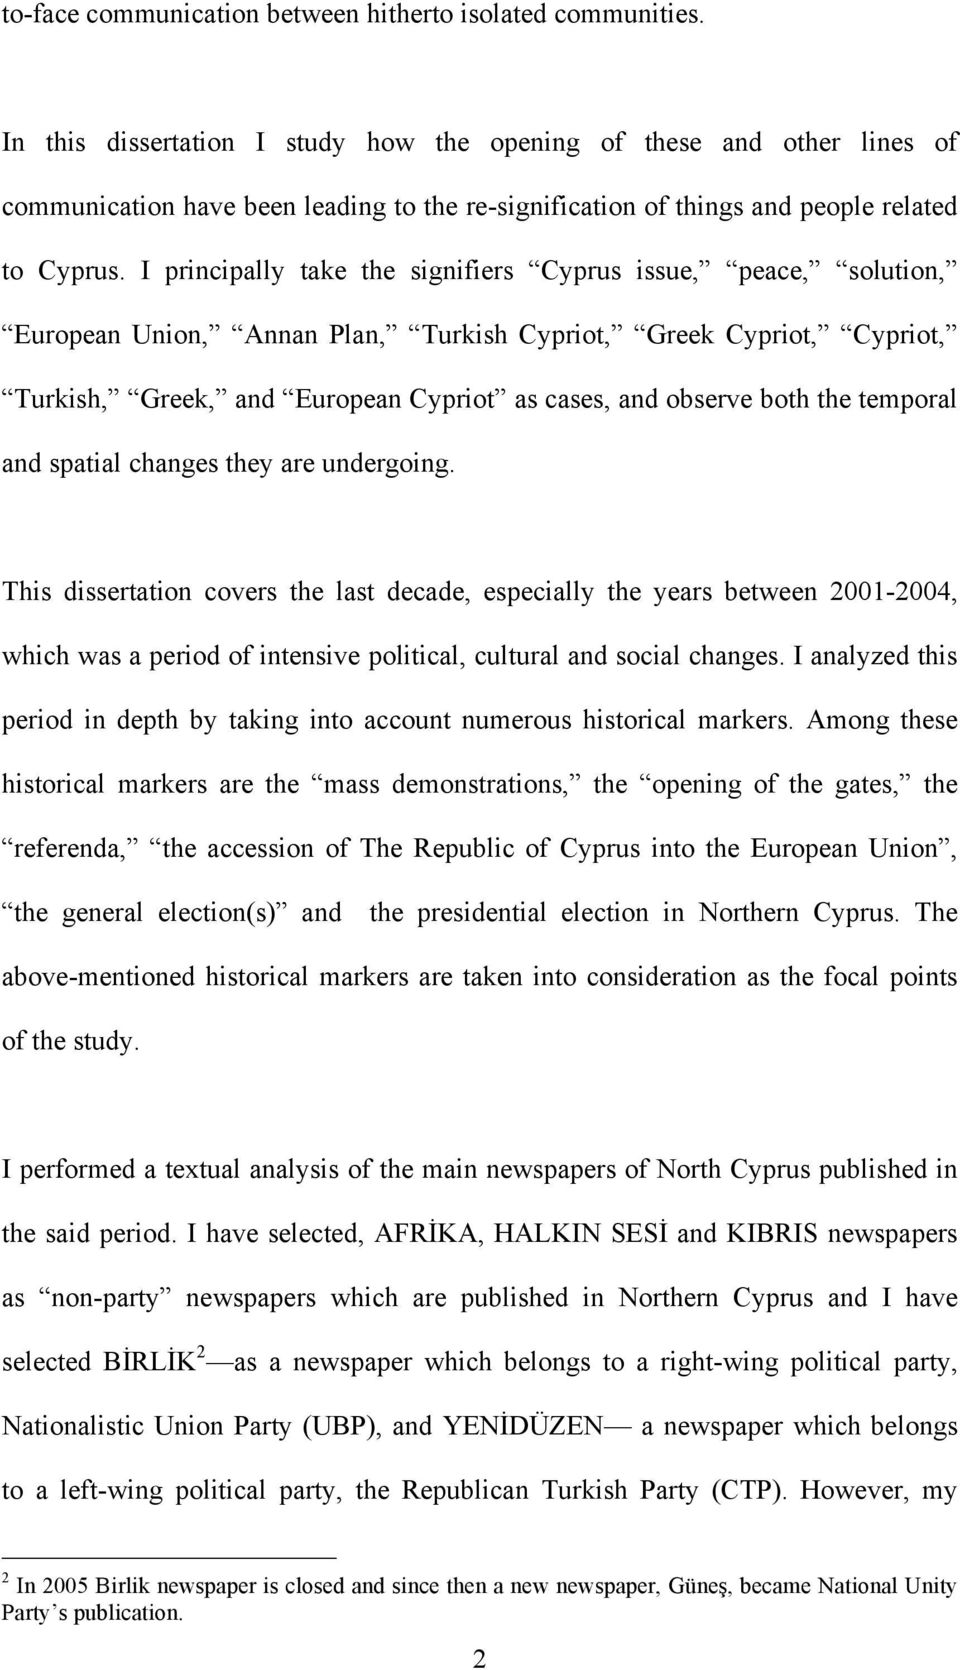 I principally take the signifiers Cyprus issue, peace, solution, European Union, Annan Plan, Turkish Cypriot, Greek Cypriot, Cypriot, Turkish, Greek, and European Cypriot as cases, and observe both